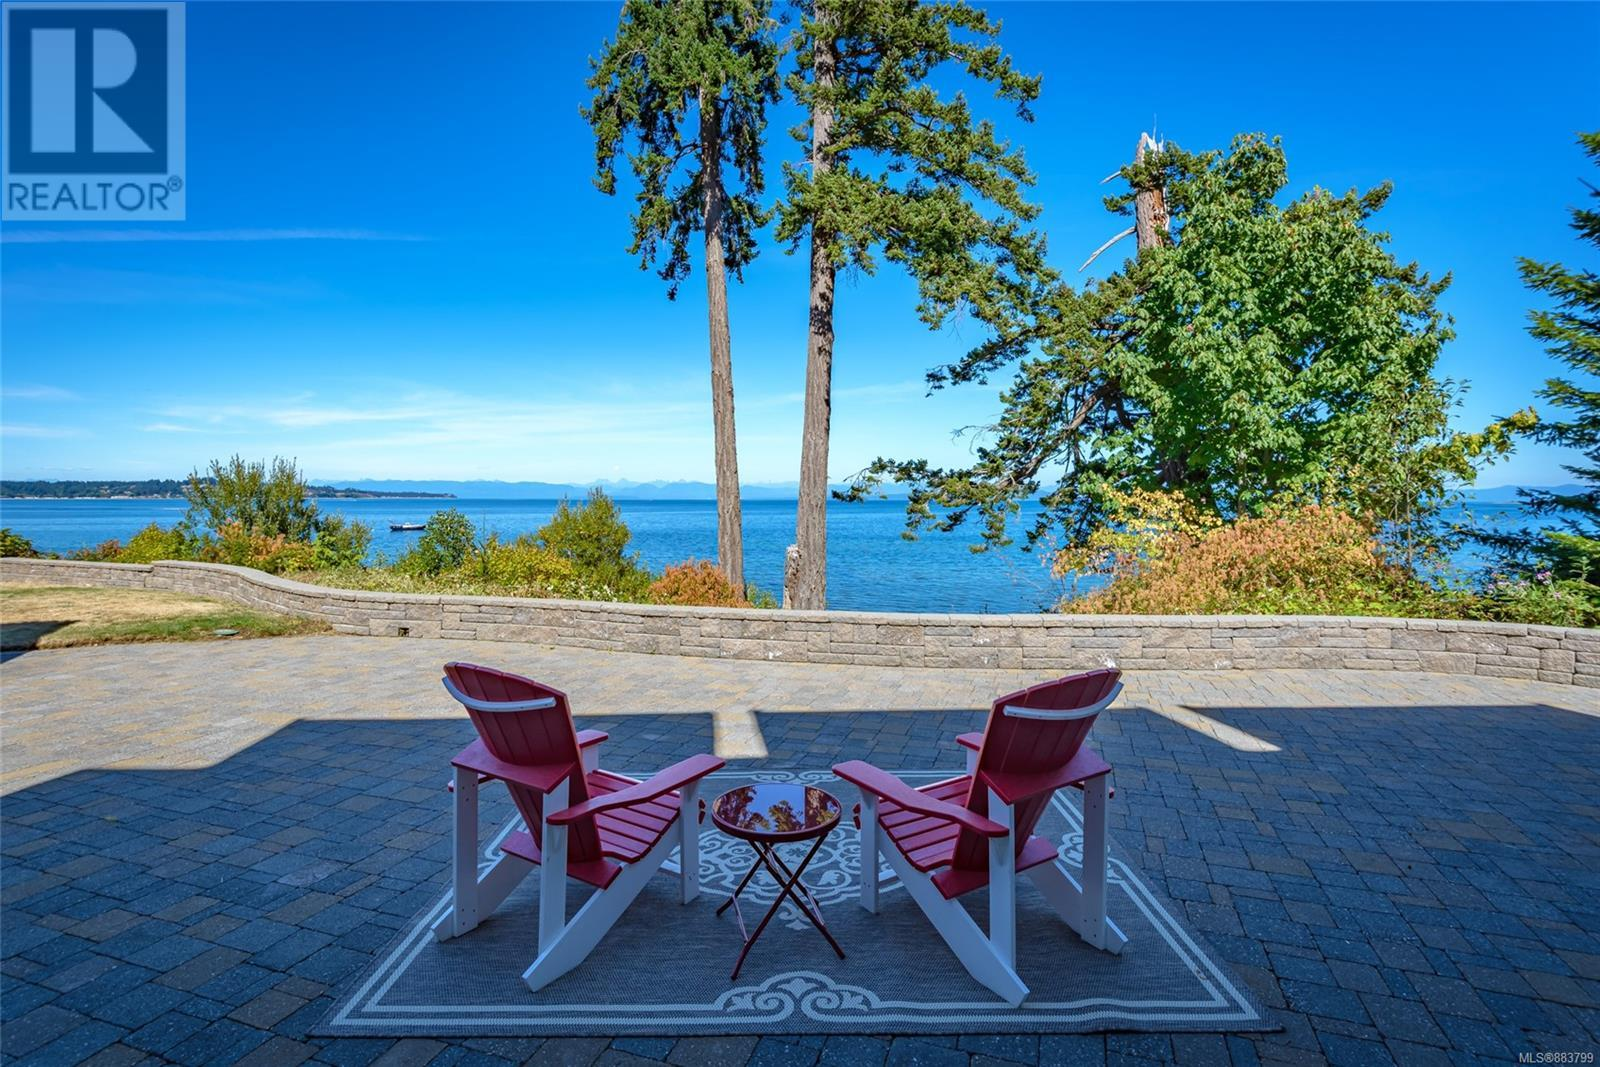 MLS® #883799 - Courtenay House For sale Image #73